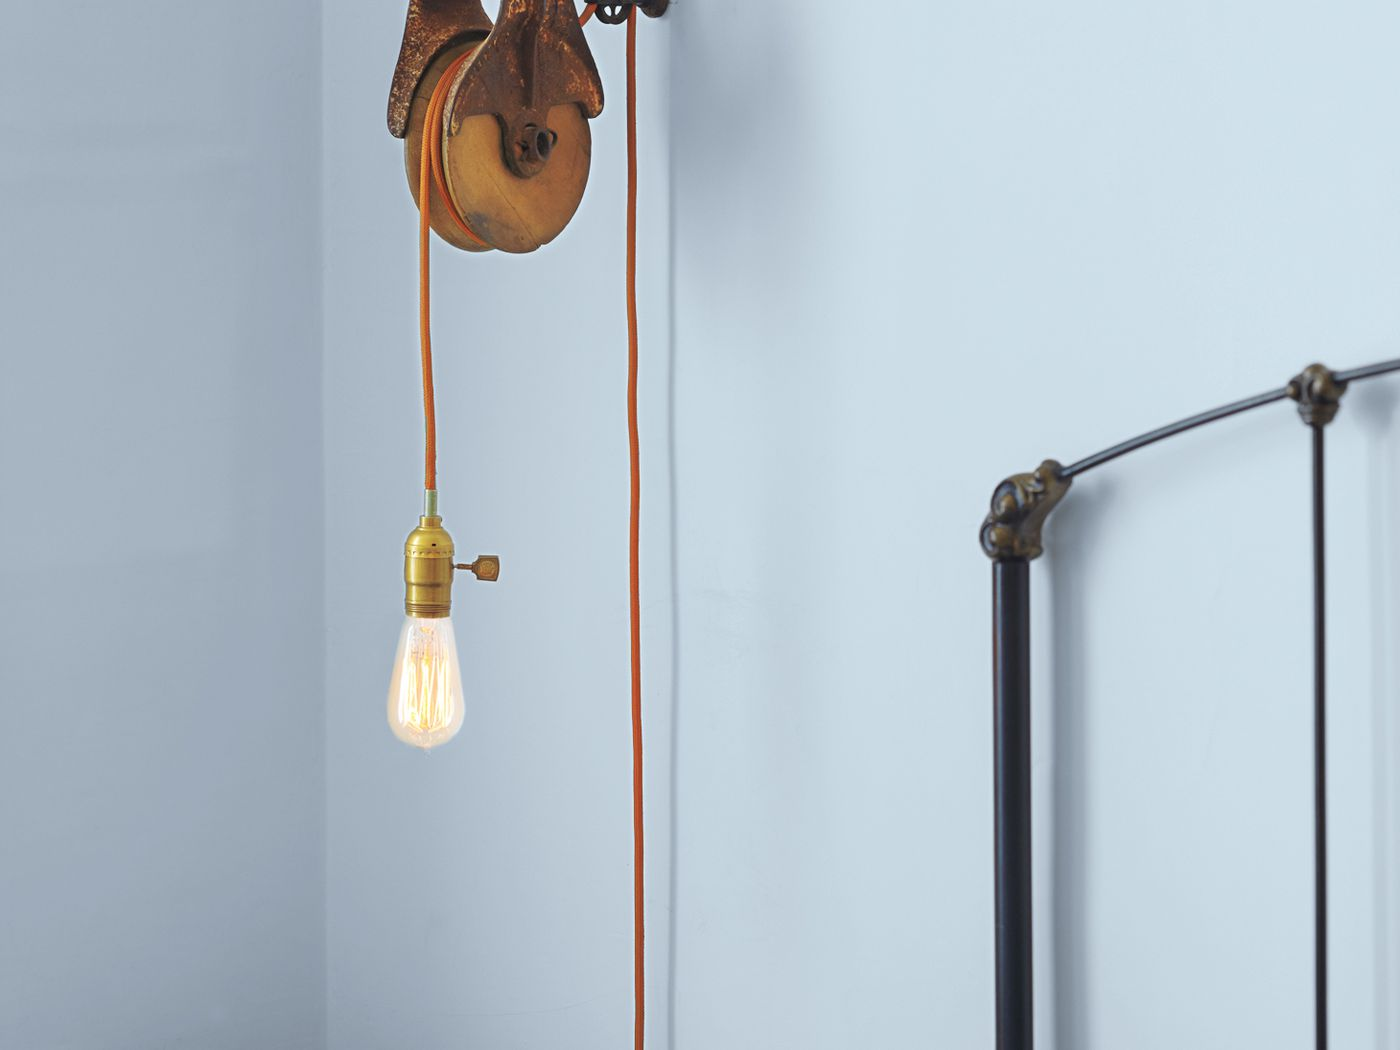 How To Use A Barn Pulley To Make A Wall Mount Light Fixture This Old House